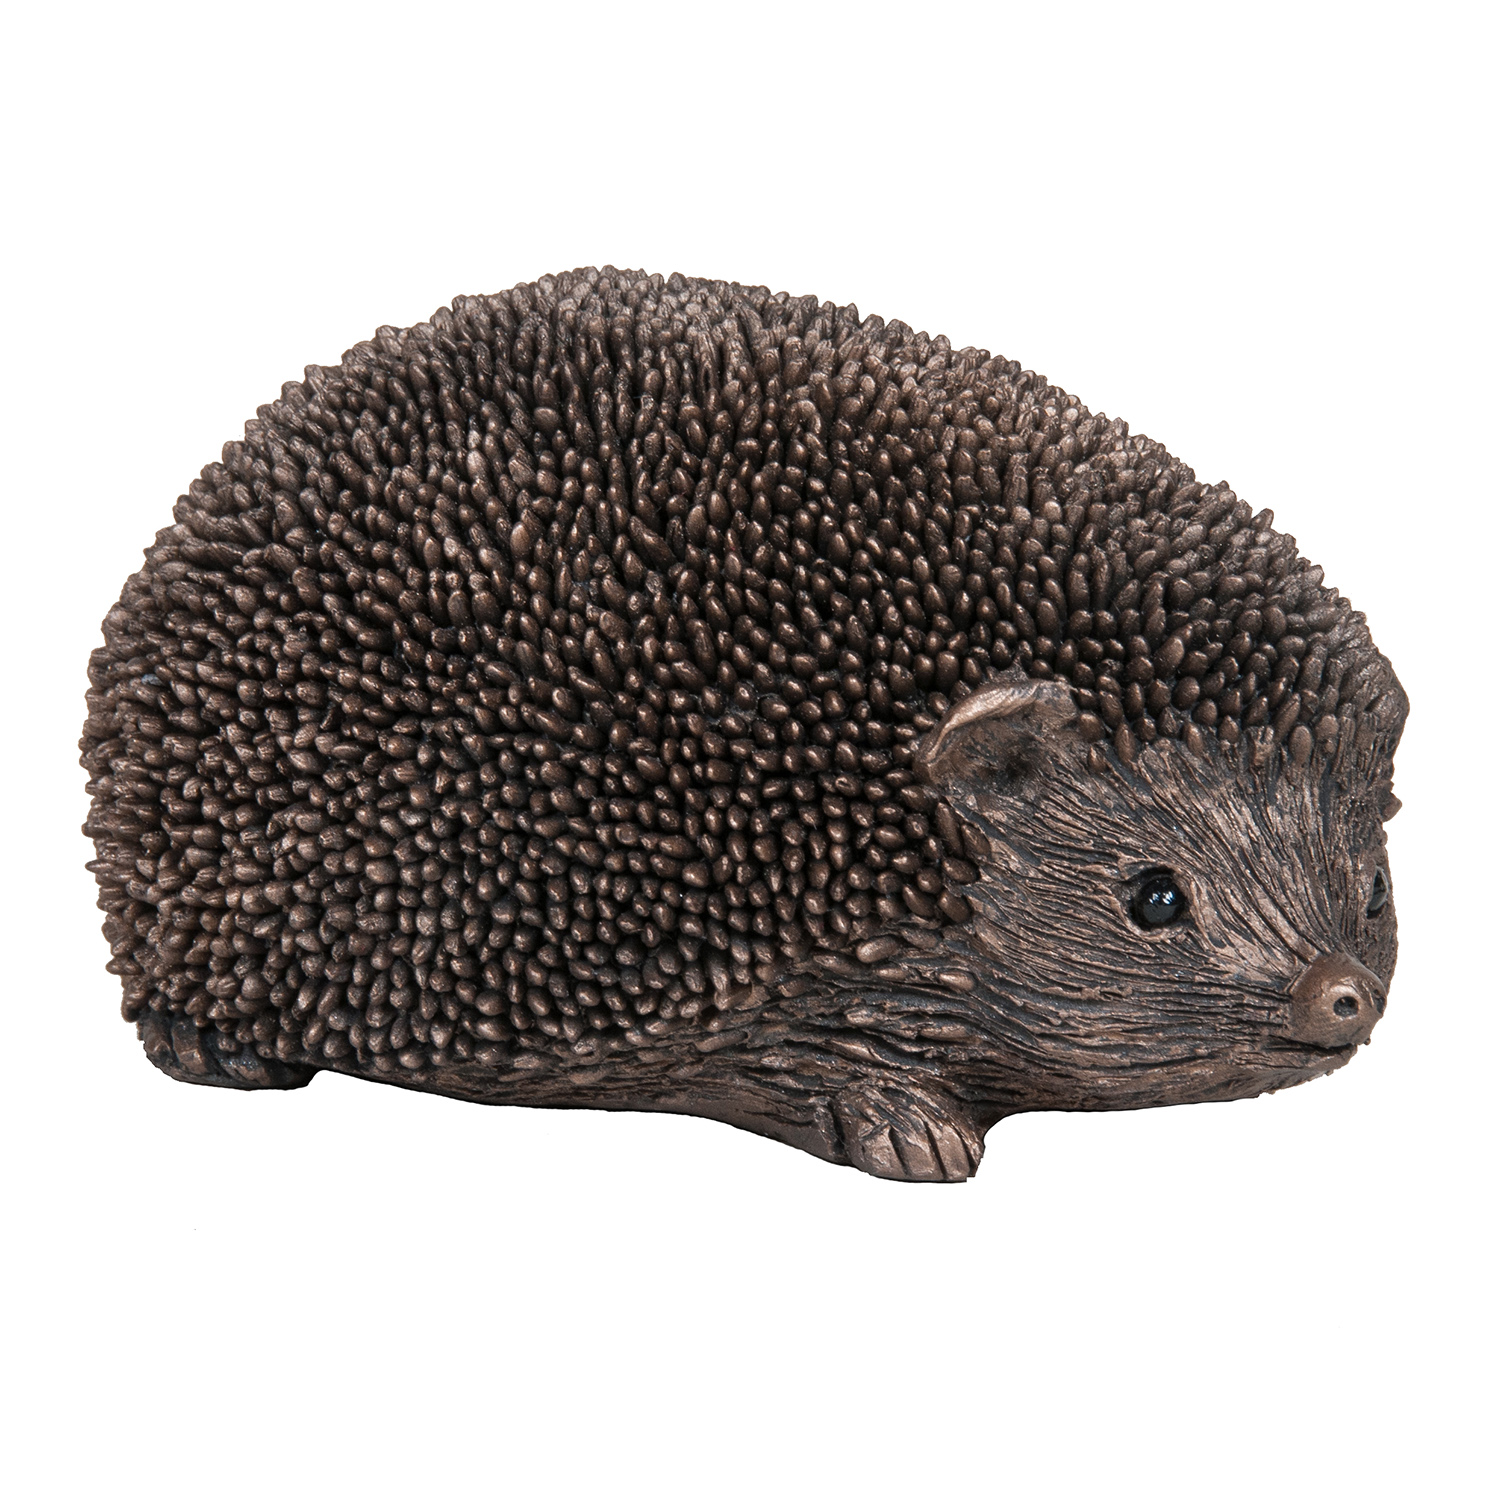 Frith Sculpture – Wiggles – Hedgehog Walking in Bronze Resin by Thomas Meadows